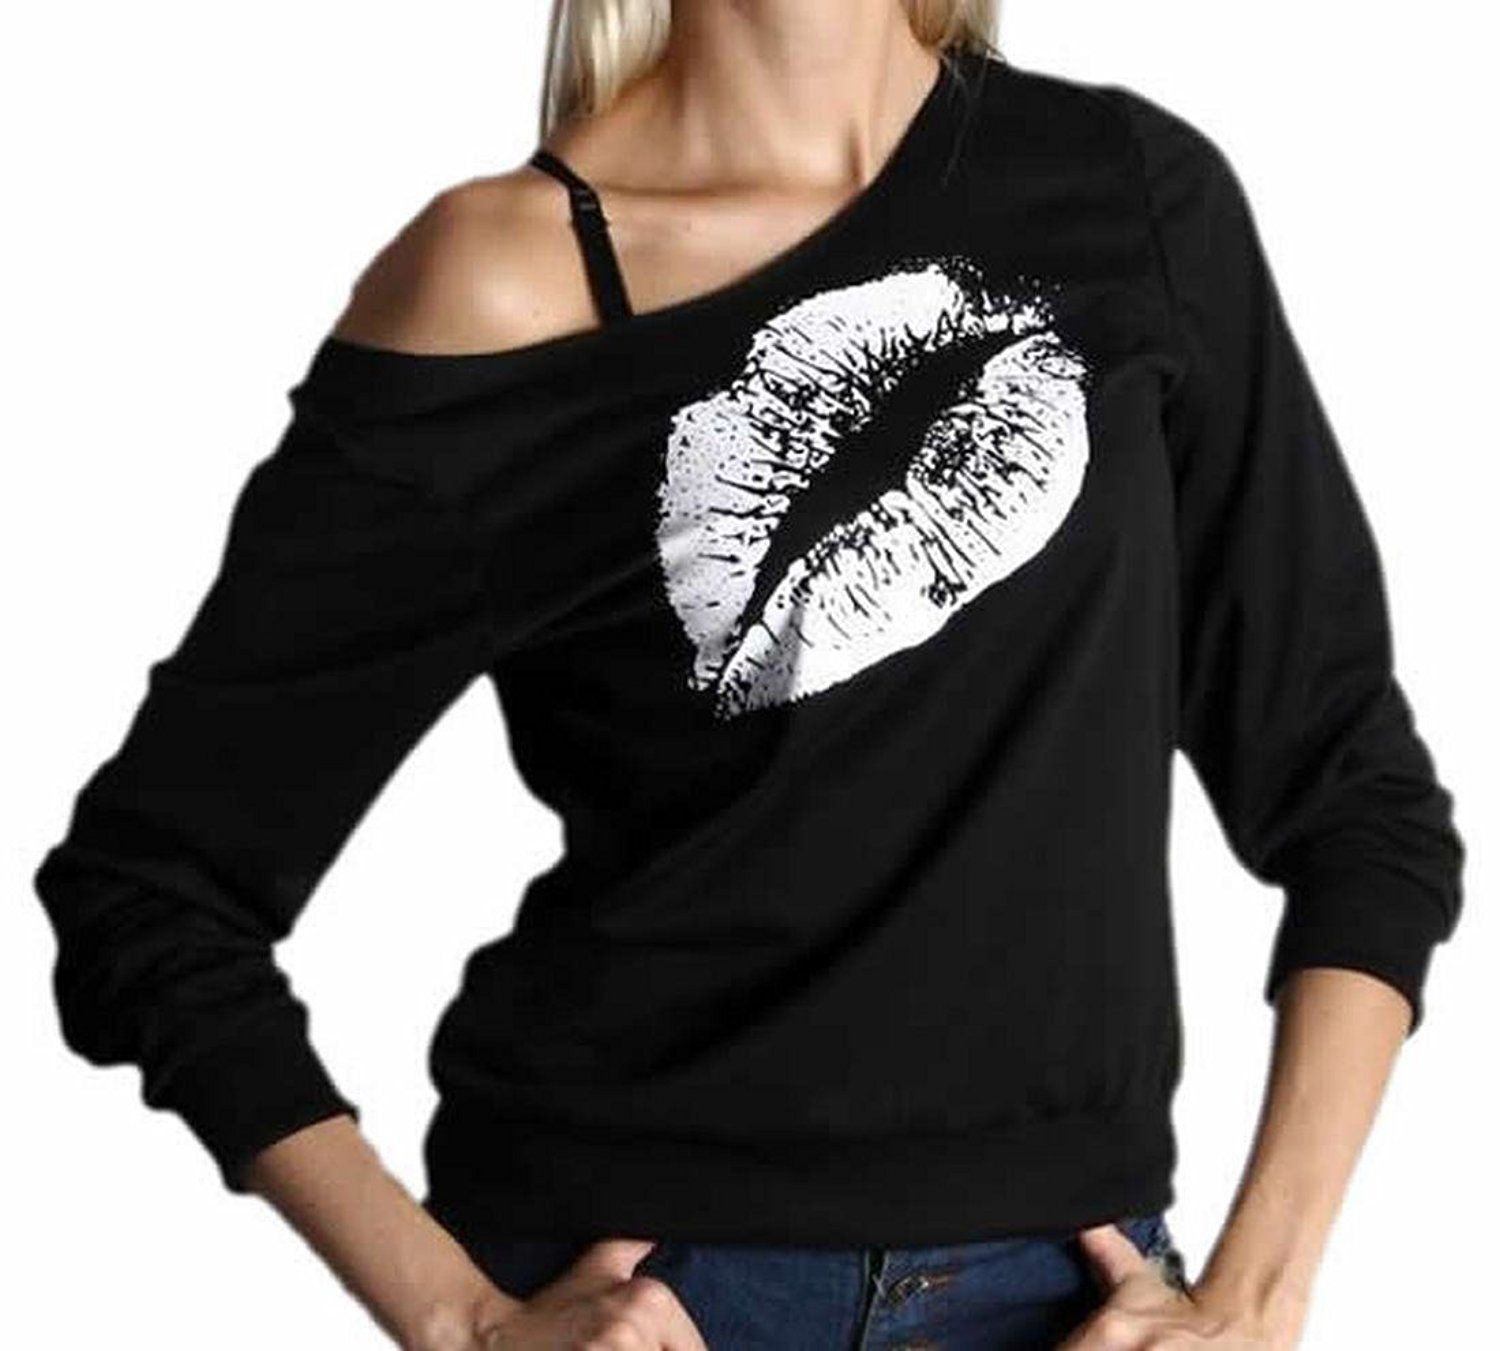 Generic Women's Fashion Print Off Shoulder Long Sleeve Pullover Tops *** This is an Amazon Affiliate link. Check out the image by visiting the link.